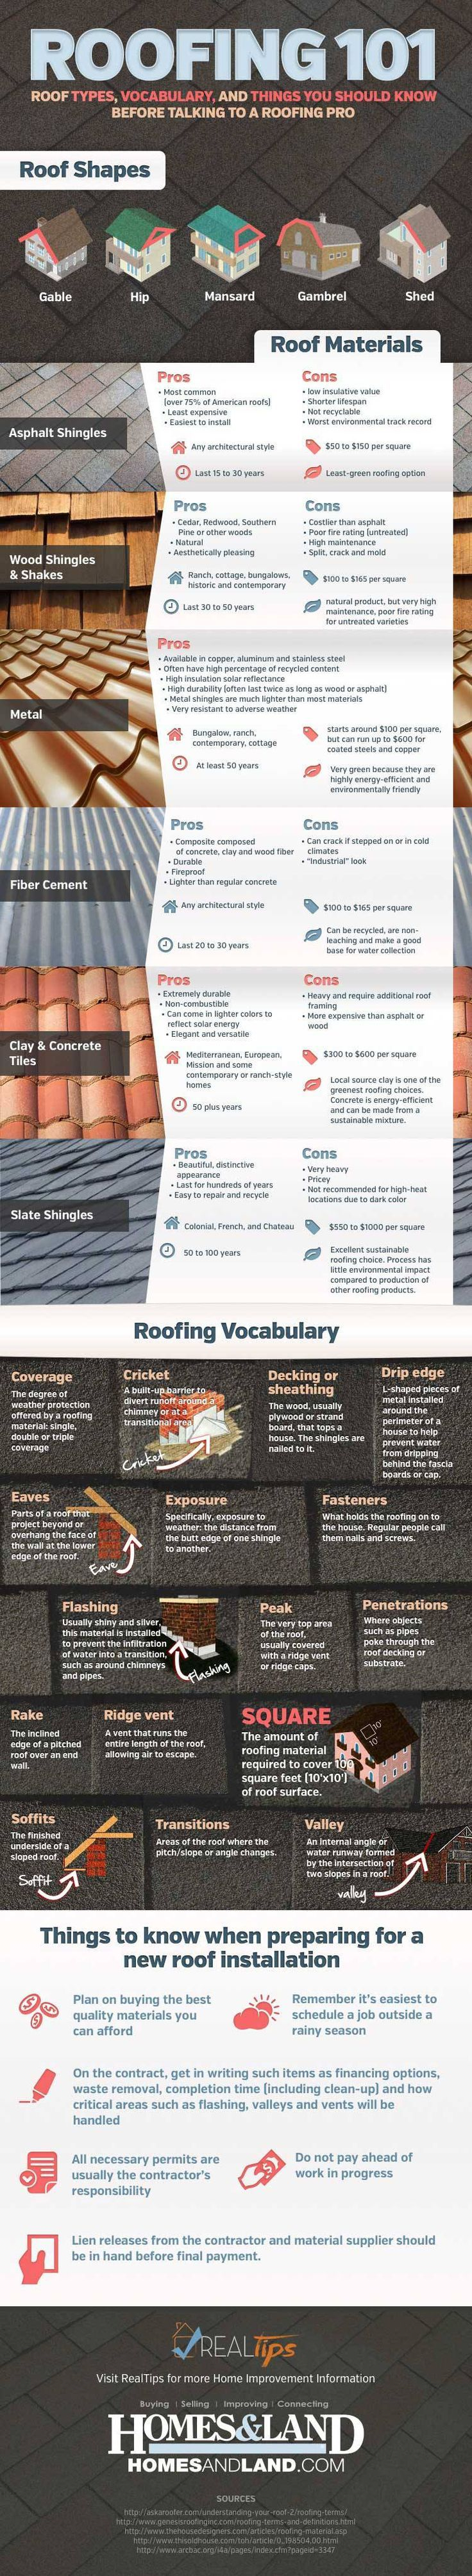 Having a good roof over their heads is something your clients are definitely looking for! These tips are great for understanding which ones will stand up to the test of time and design.